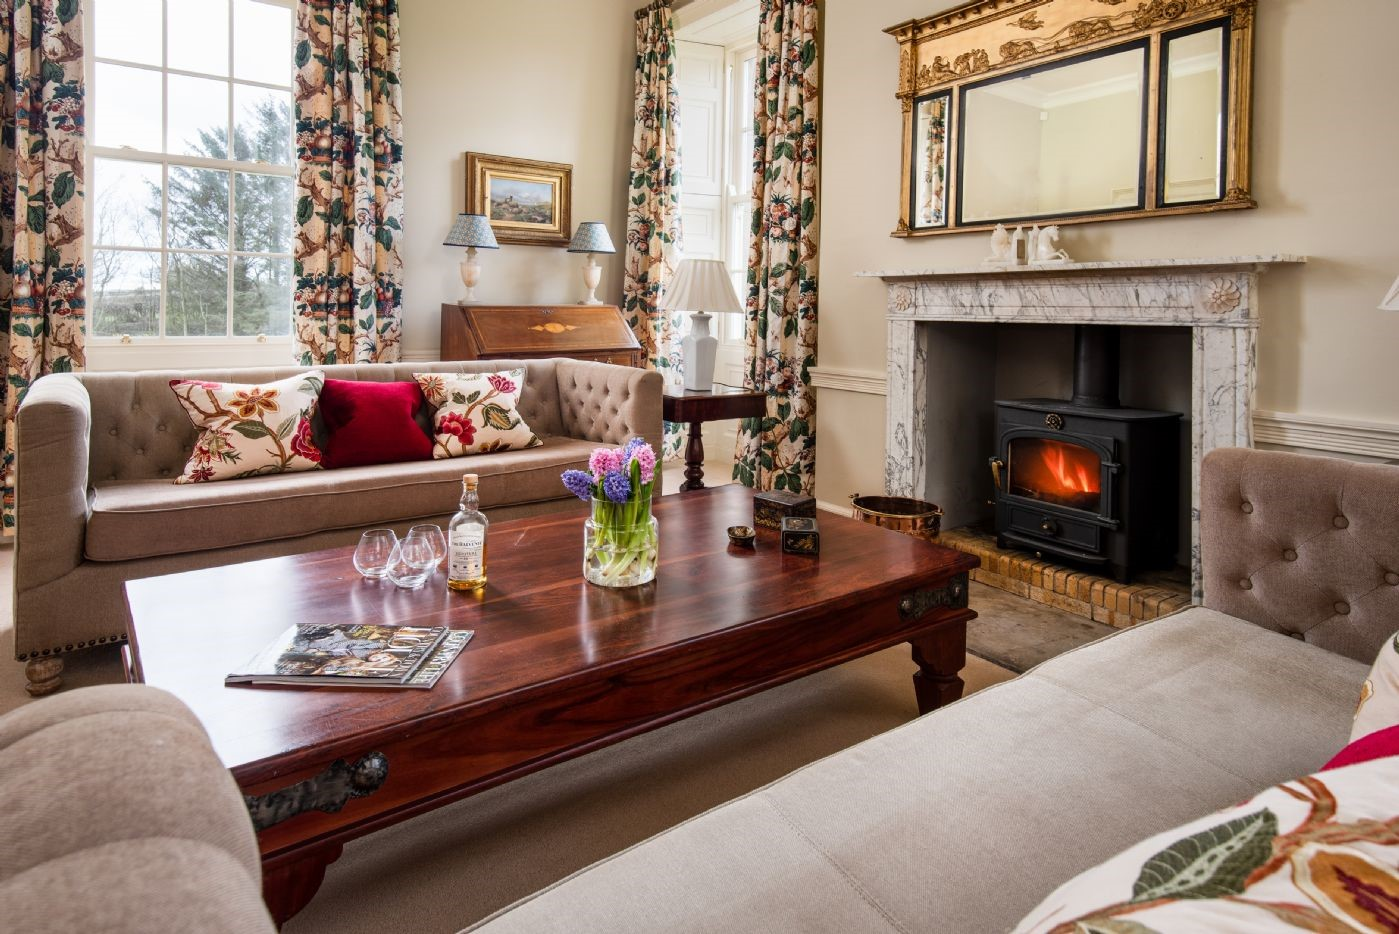 East House - drawing room fireside